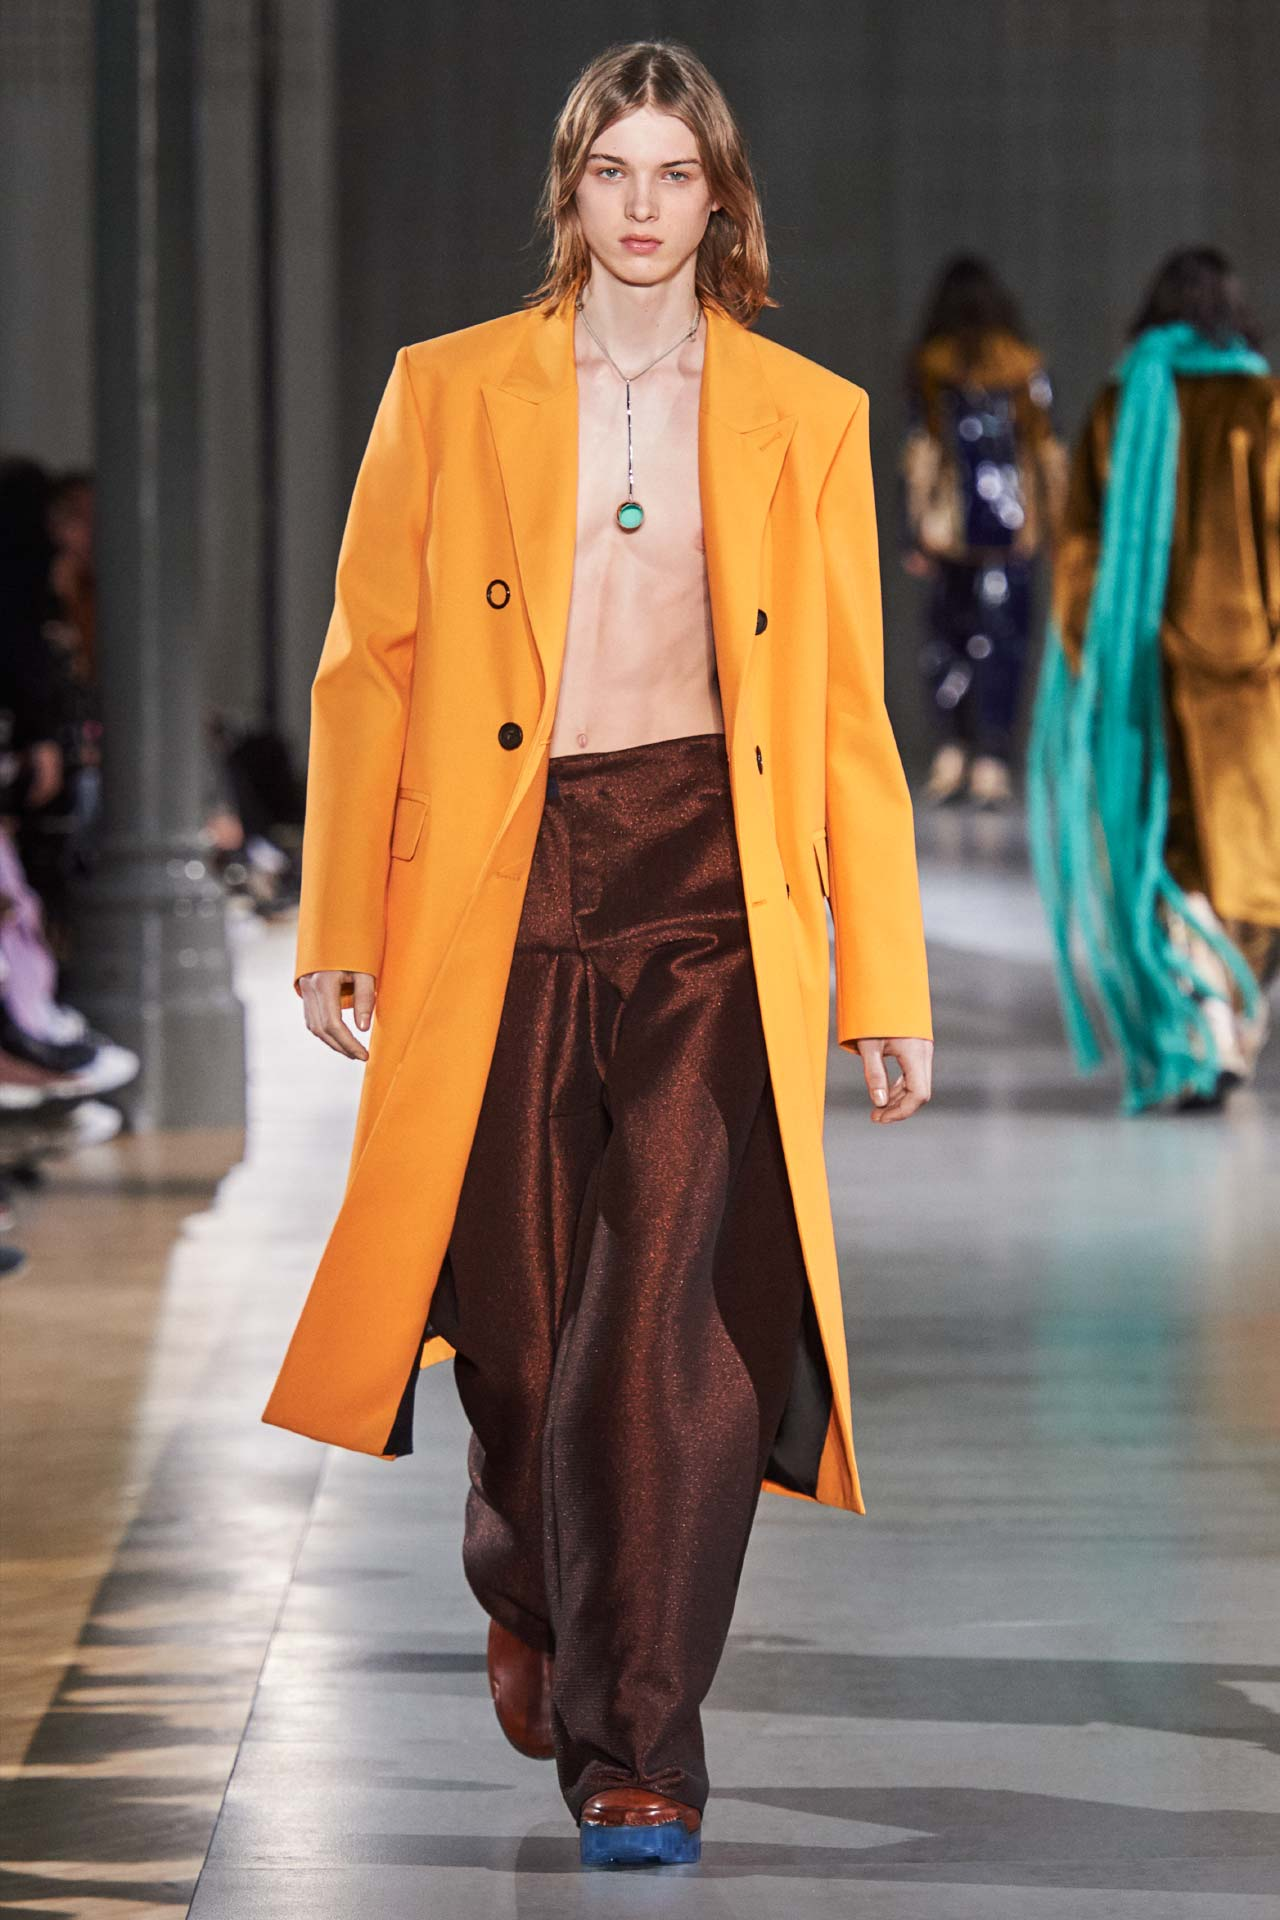 Look Fall/Winter 2019, image 30